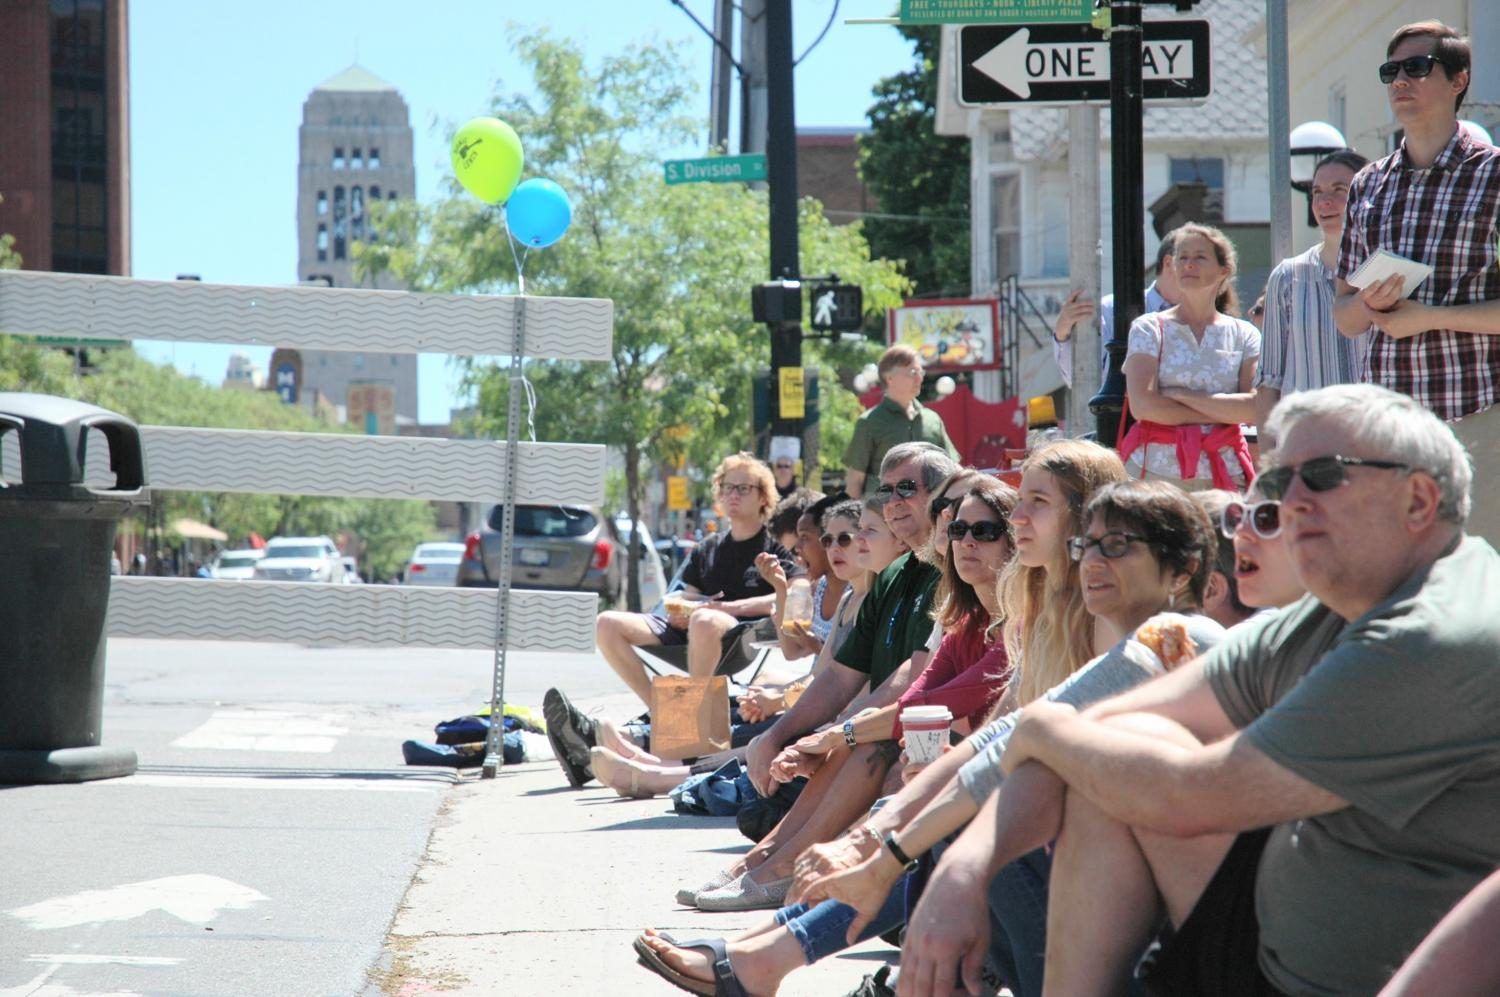 About two hundred people were in attendance on that hot Thursday to watch the two artists perform.